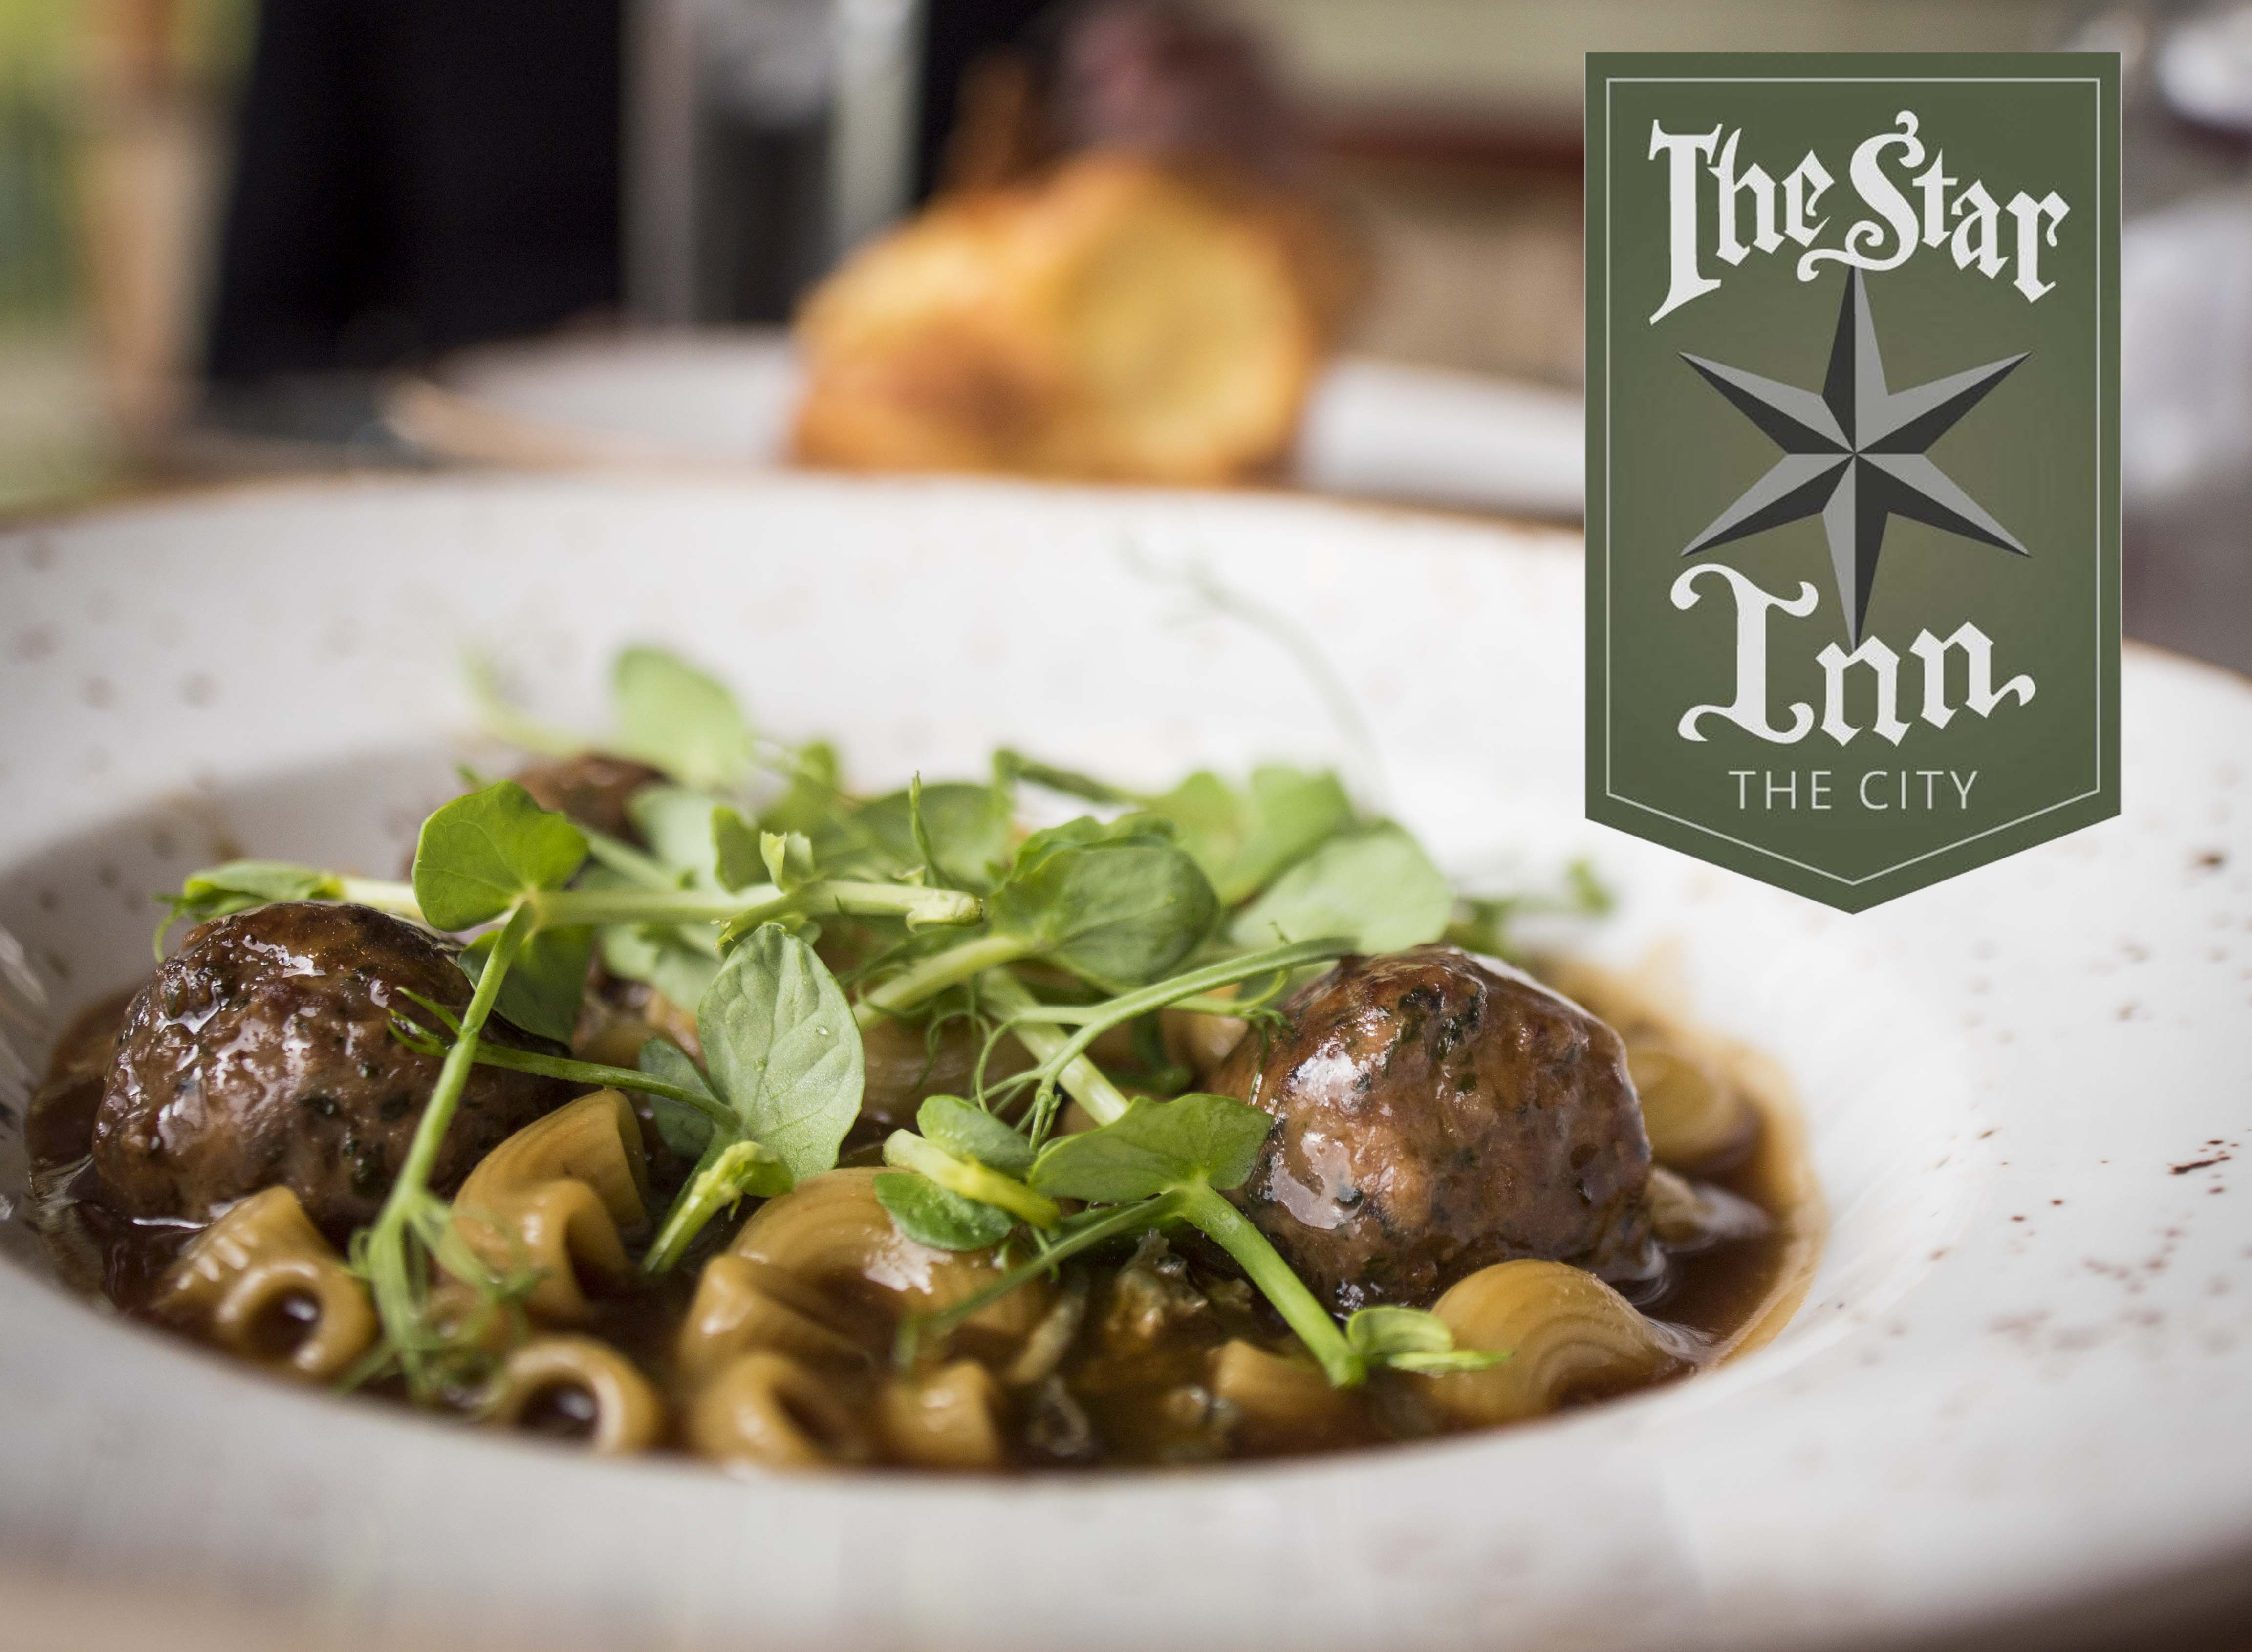 The Star Inn The City Restaurant York review post image